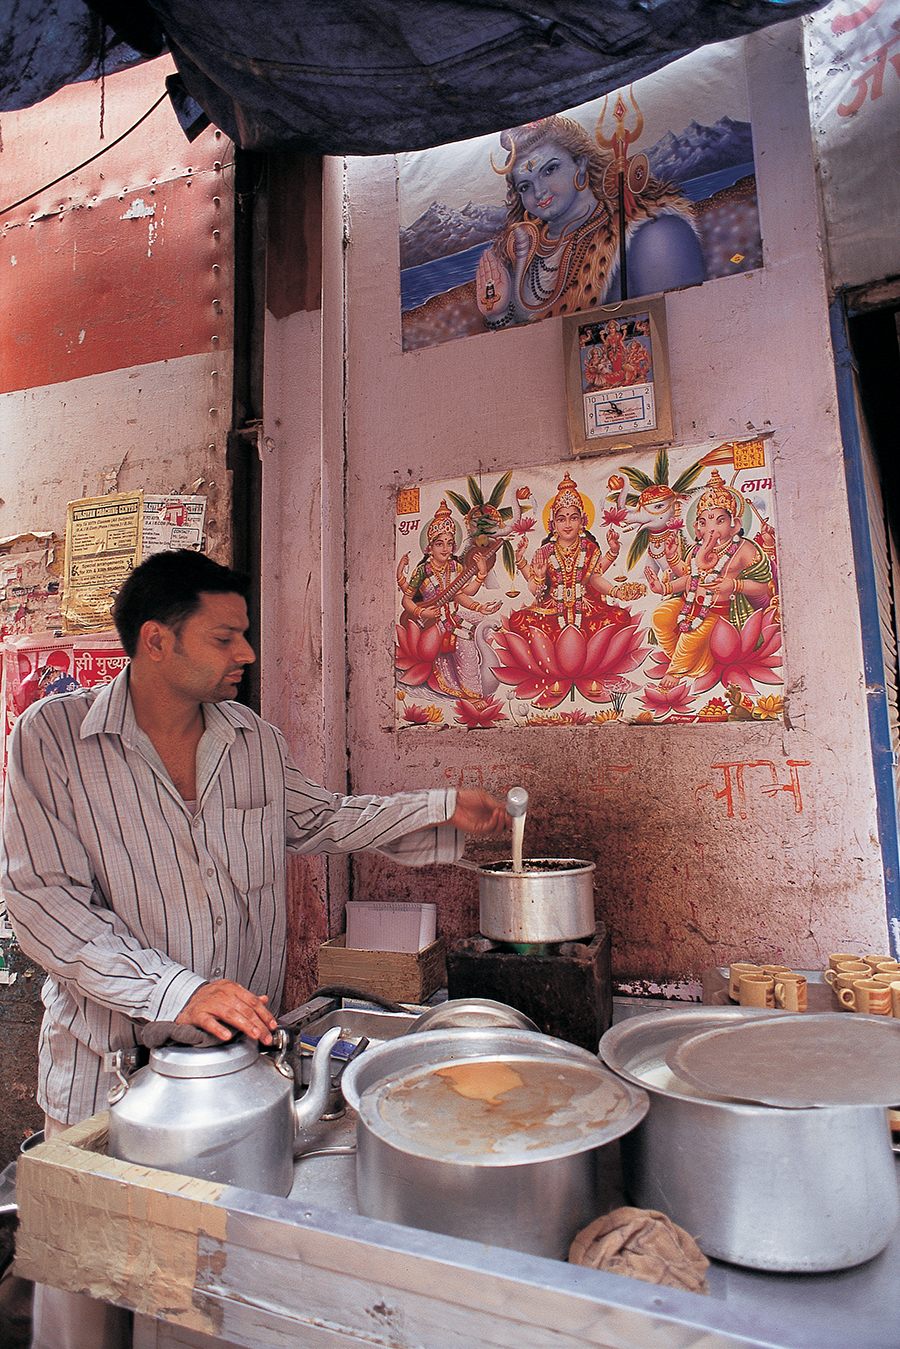 A tea stall in Chandni Chowk, Delhi. Shiva's three aspects—as the god of truth, creative energy, and darkness (as destroyer)—makes him a prominent figure in popular art, and his imagery pervades everyday life, thereby connecting earth life to a mythical one. Photo: Delhi, India